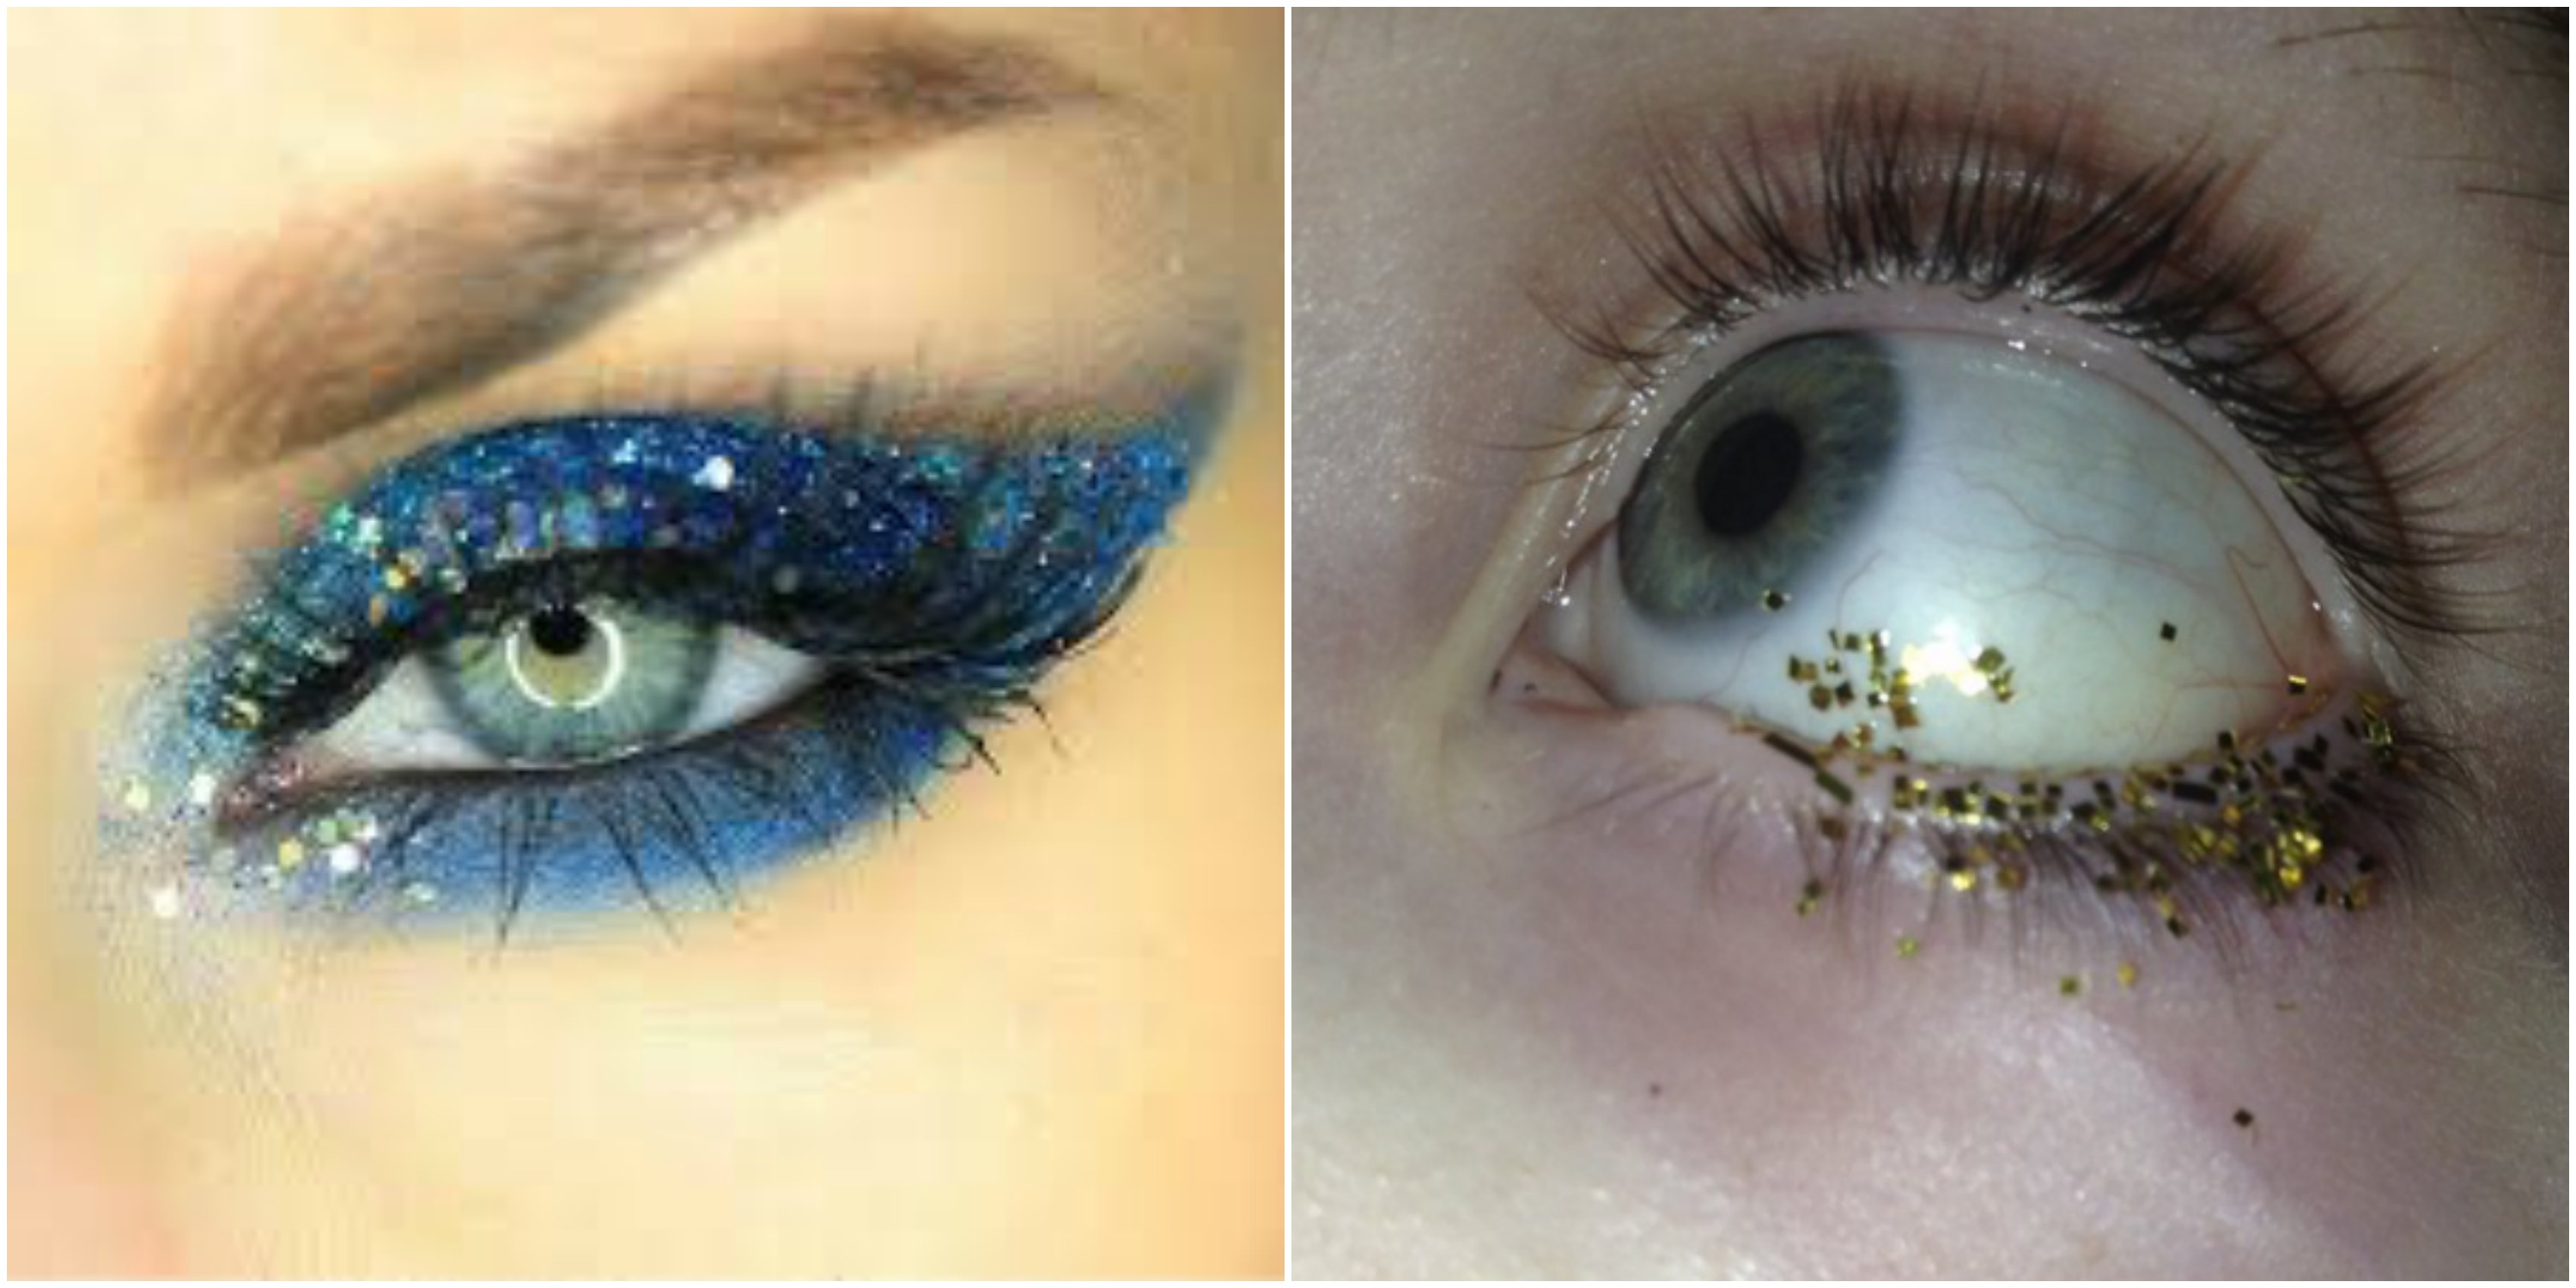 Make-Up su Instagram Vs. Make-Up nella Realtà: Vi Rispecchiate in Queste Foto?